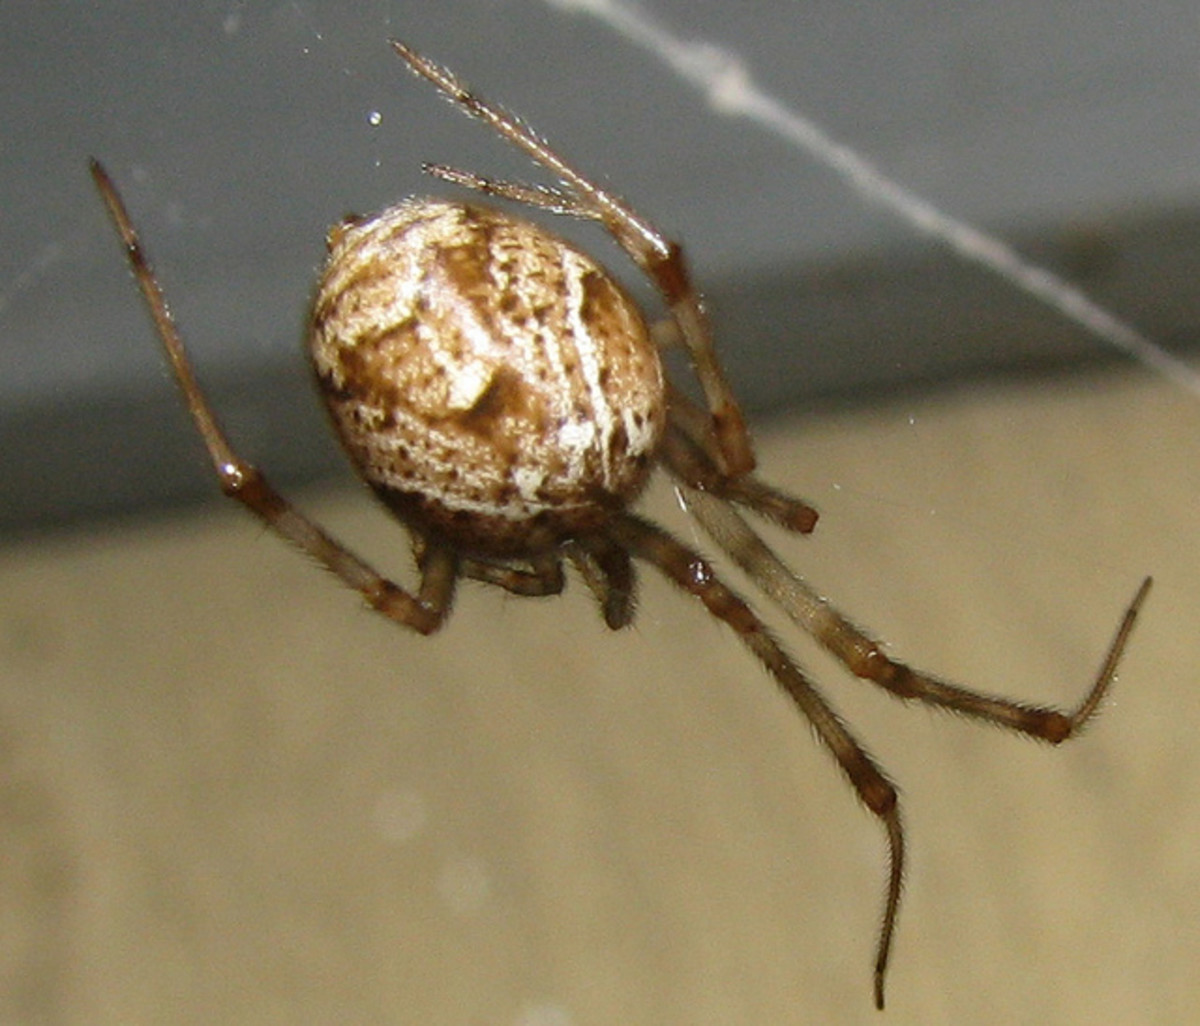 But common house spiders actually look more like mottled bird eggs than a black widow.